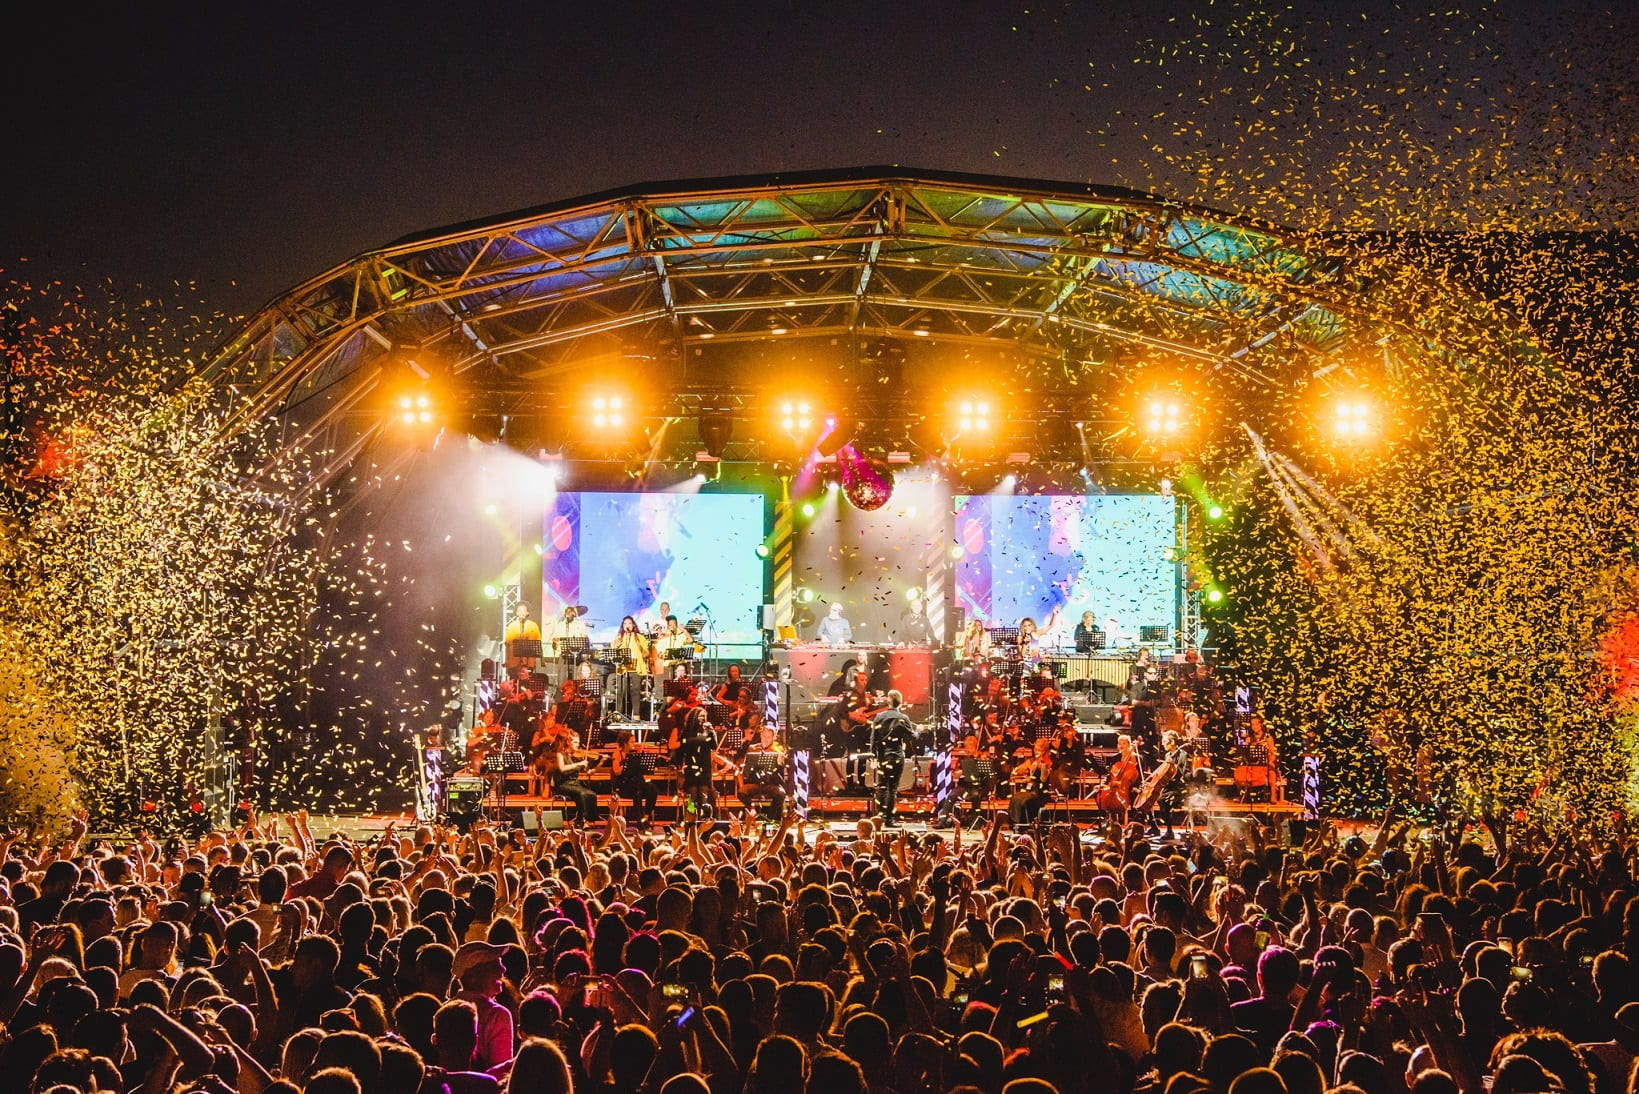 HACIENDA CLASSICAL BACK FOR 2019 SEASON AND HEADLINE SHOW AT SCARBOROUGH OAT